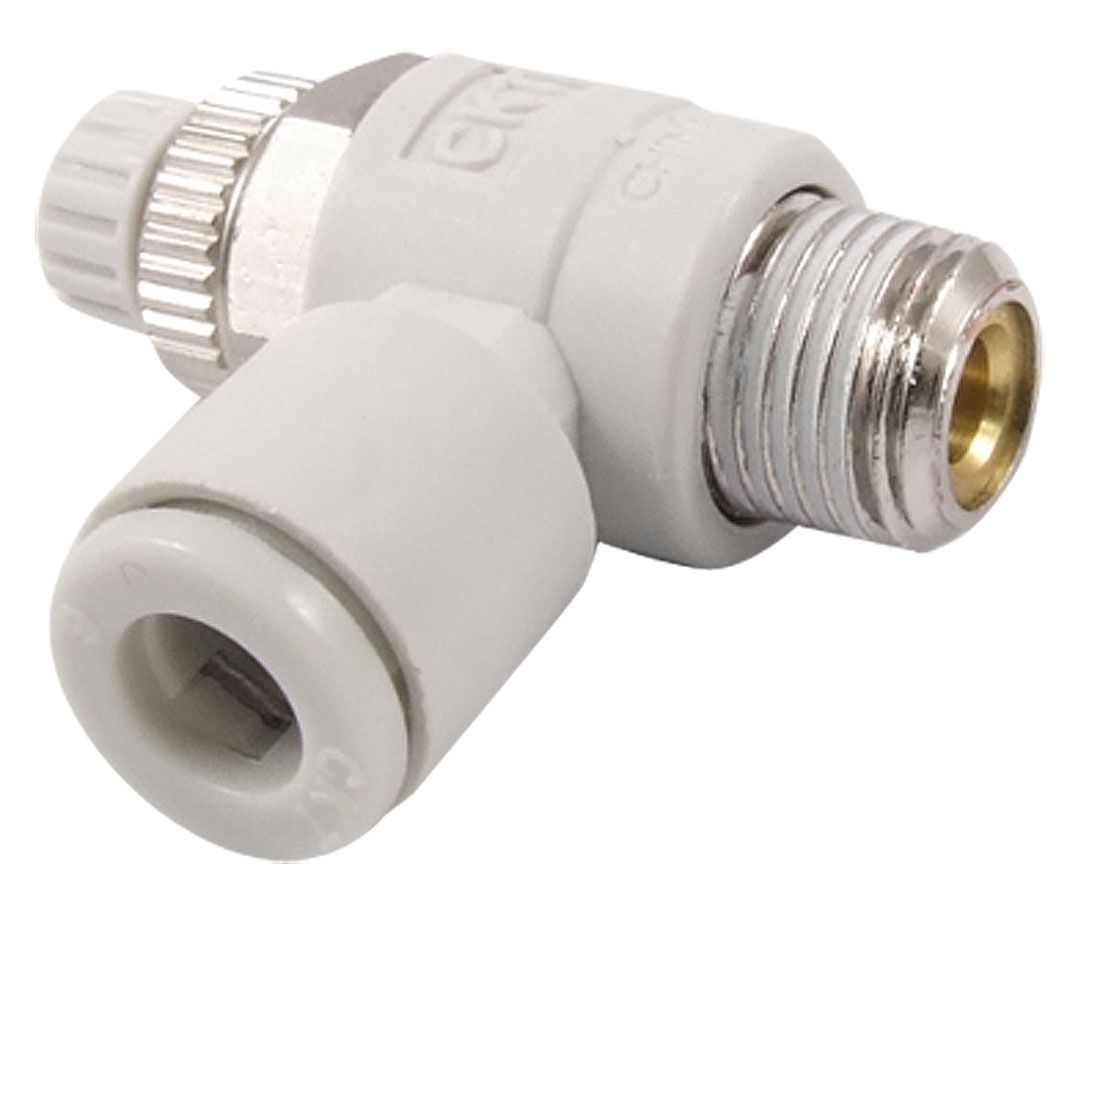 6mm OD Tube Quick Connector 10mm Male Thread Speed Control Air Valve Throttle